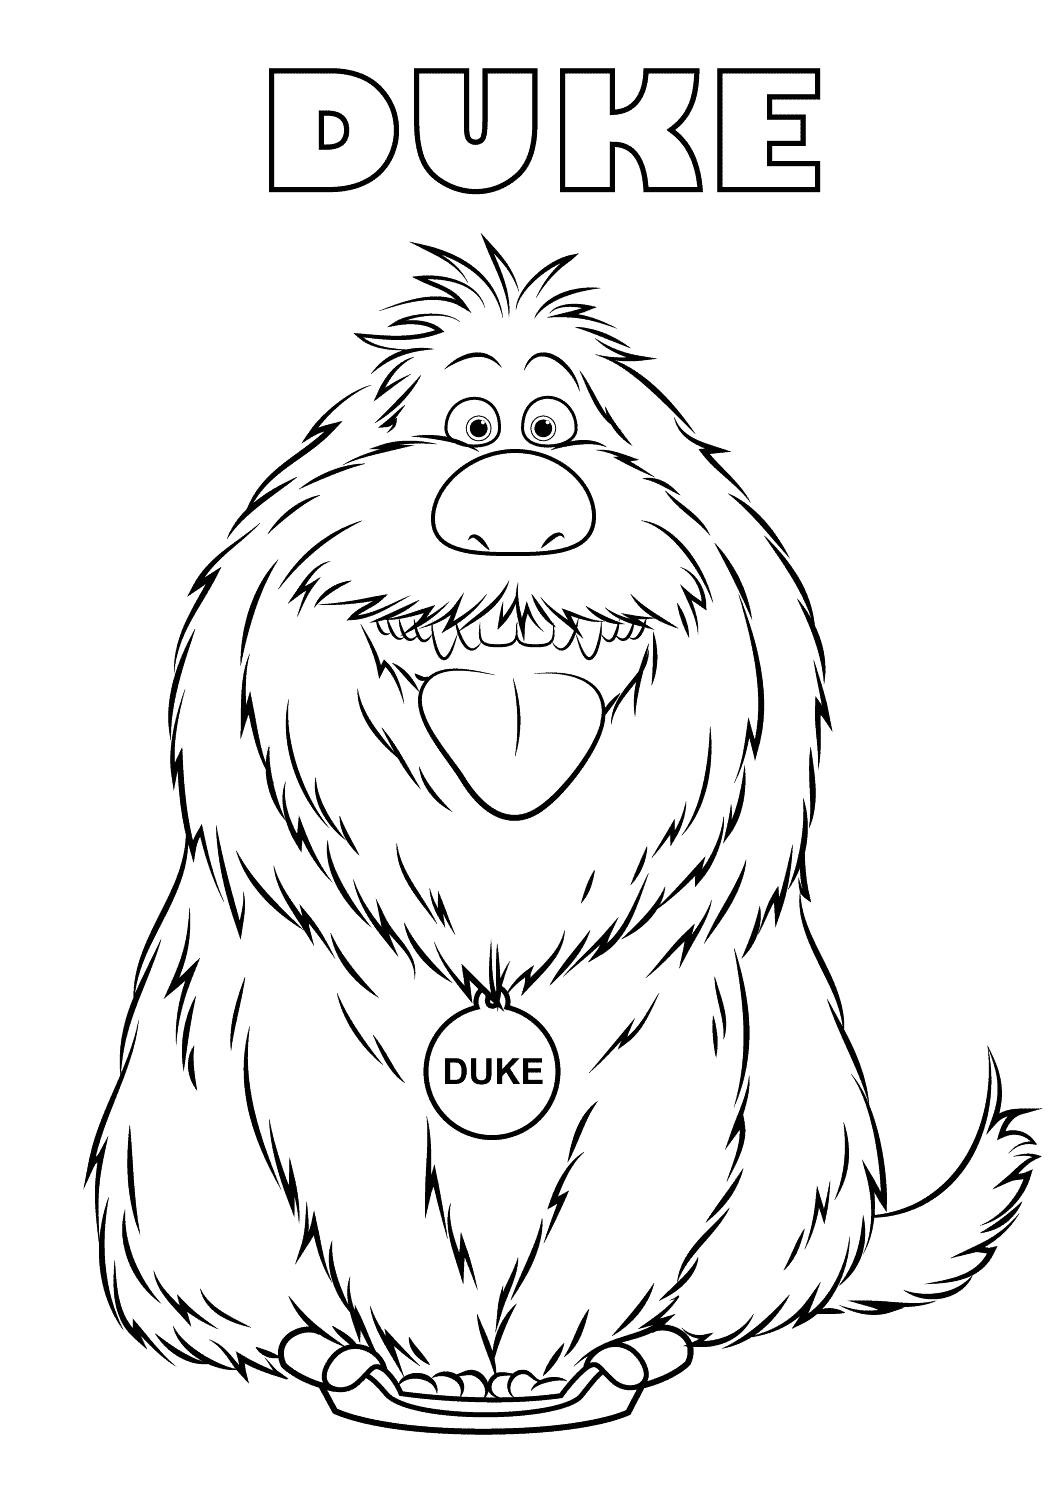 image=the secret life of pets Coloring for kids the secret life of pets 2062 3